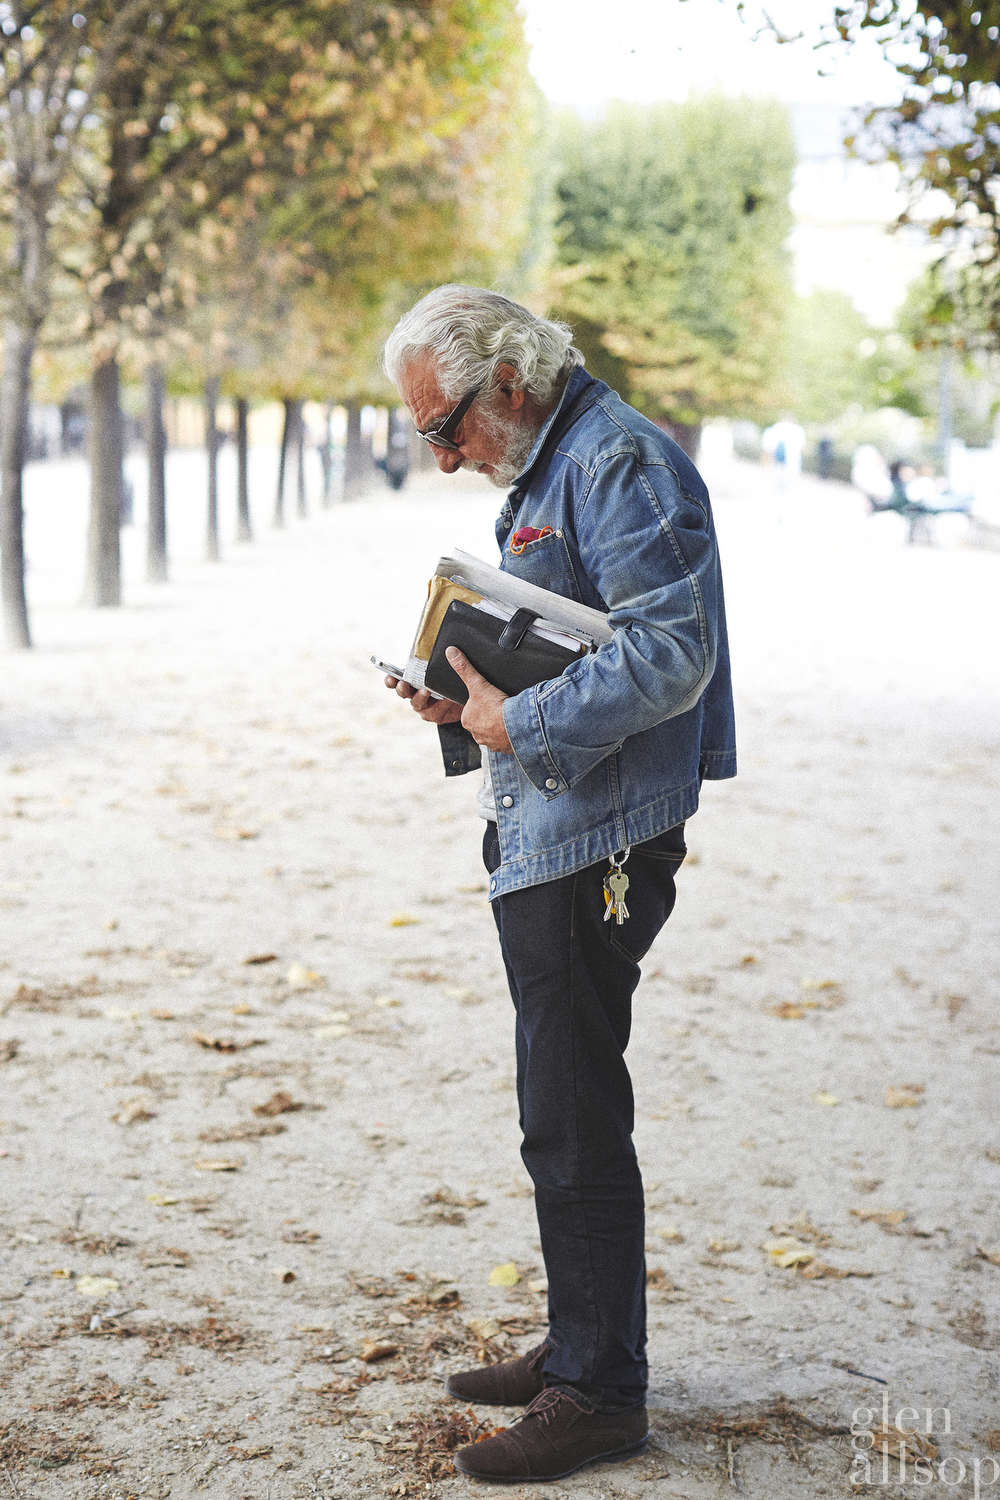 paris-denim jacket-menswear-double denim-glen allsop